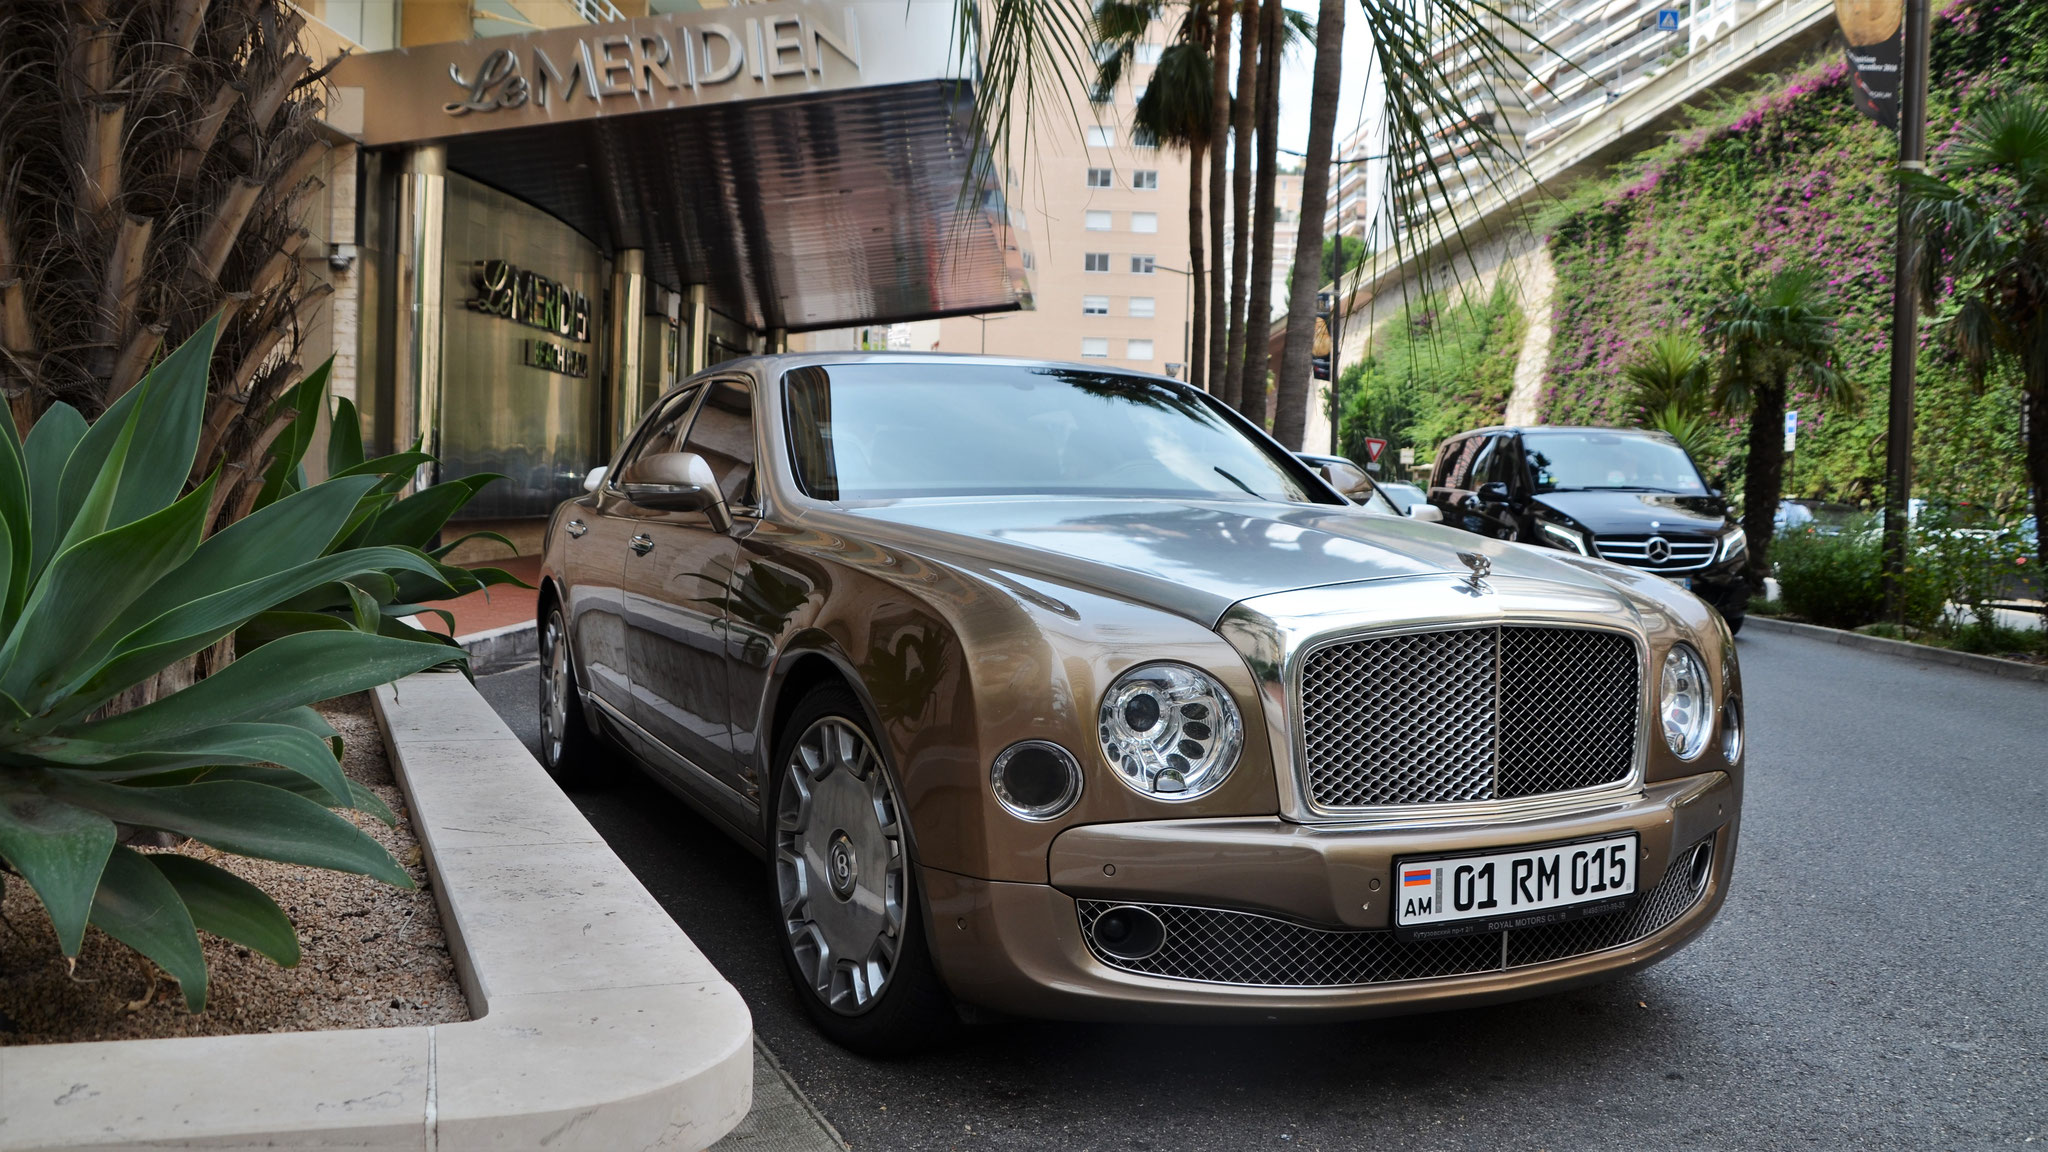 Bentley Mulsanne - 01-RM-015 (AM)